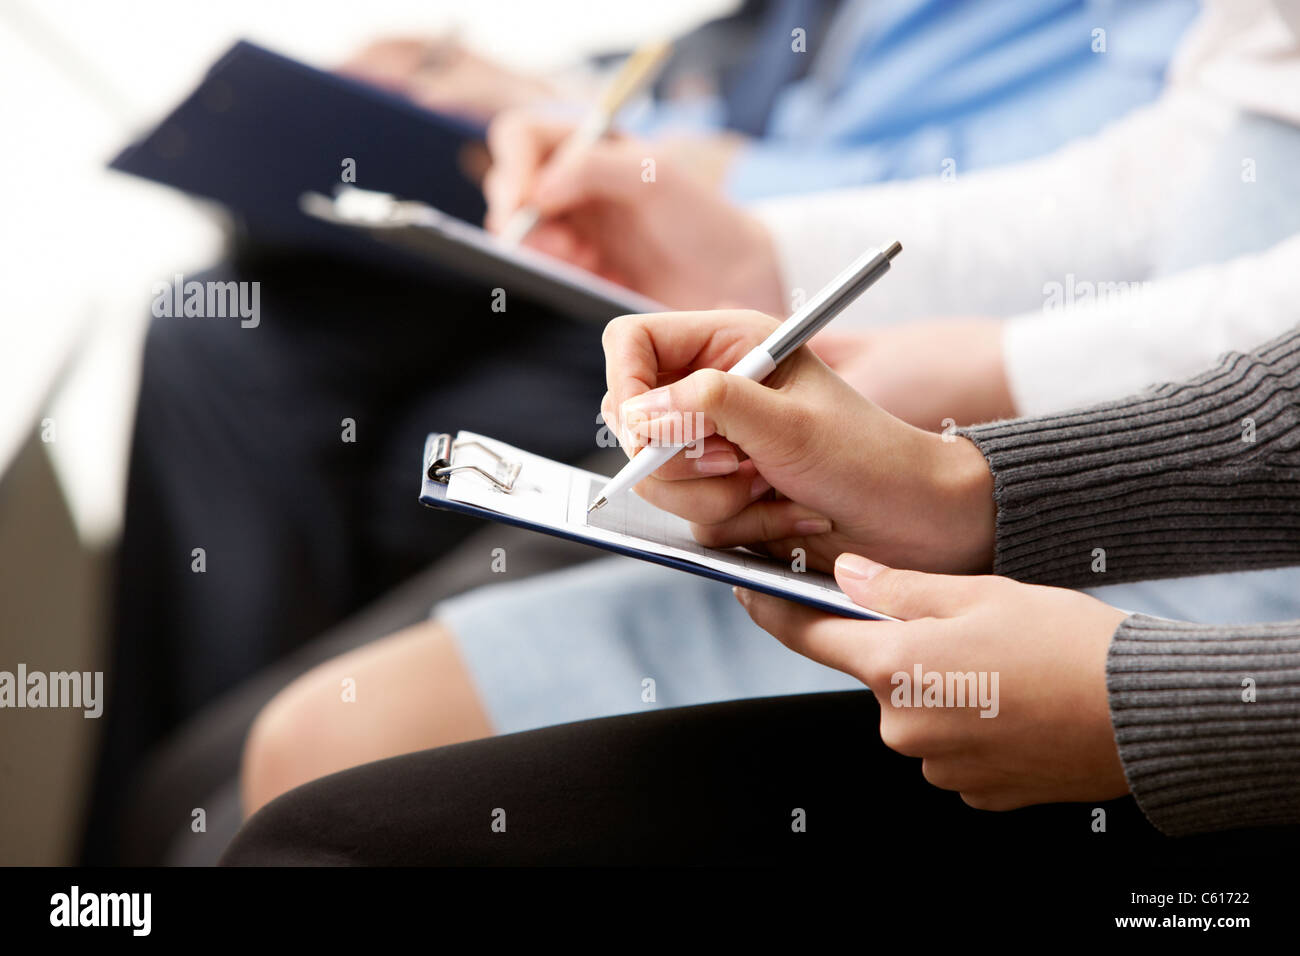 Close-up of human hands with pens over business documents - Stock Image